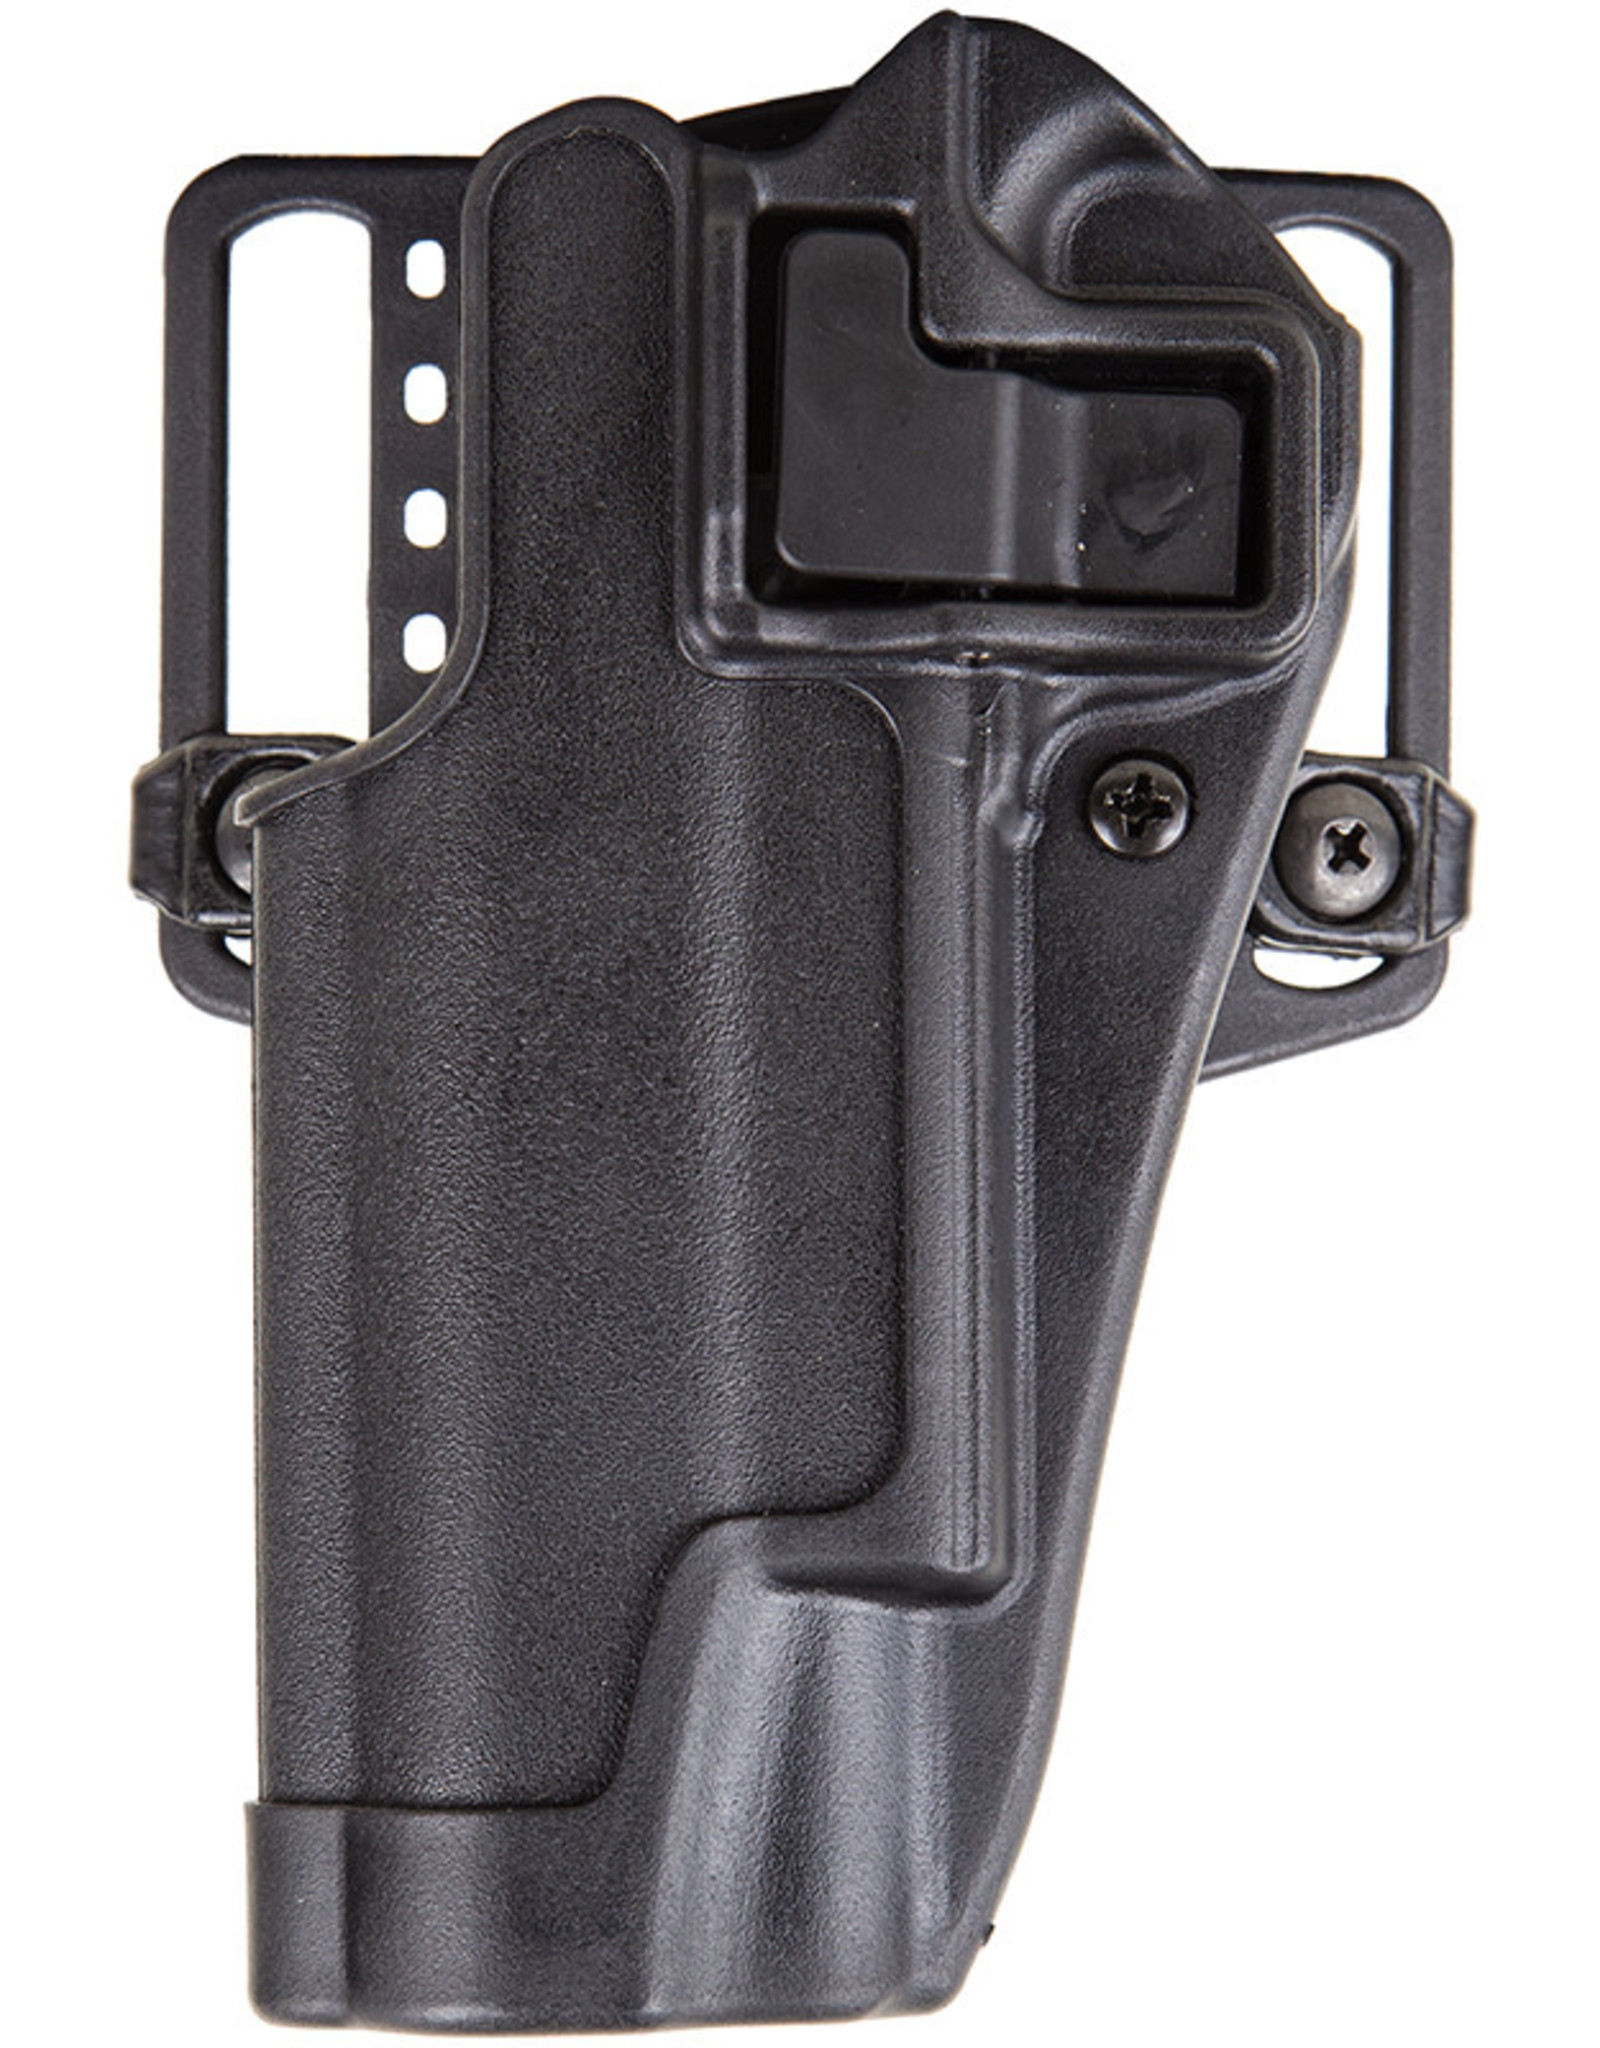 BLACK HAWK PRODUCTS Blackhawk Holster for 1911 - LEFT HAND